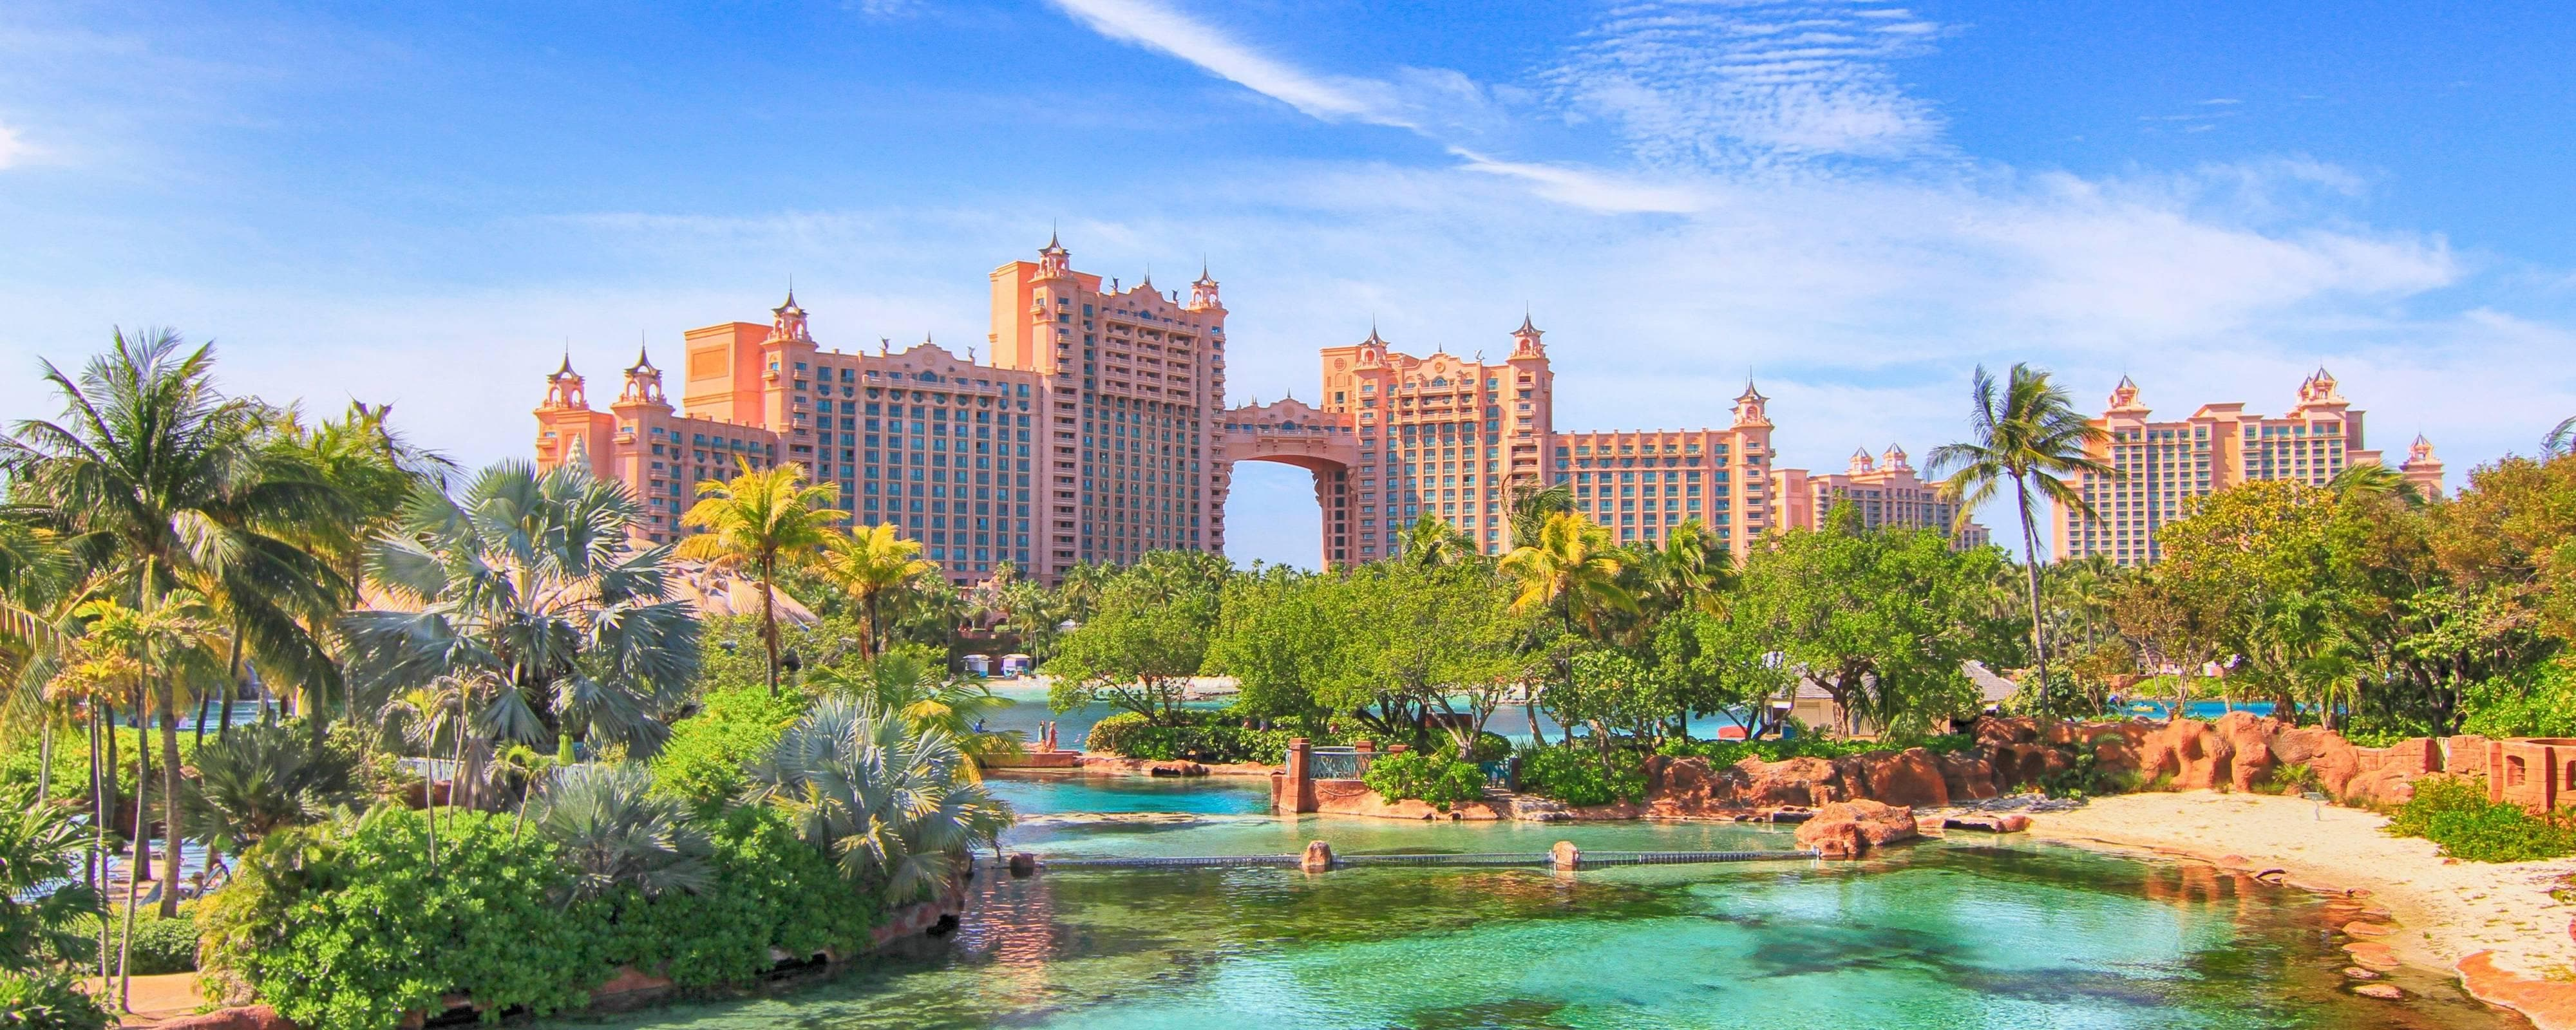 atlantis bahamas property map Resorts On Paradise Island Bahamas The Royal At Atlantis atlantis bahamas property map